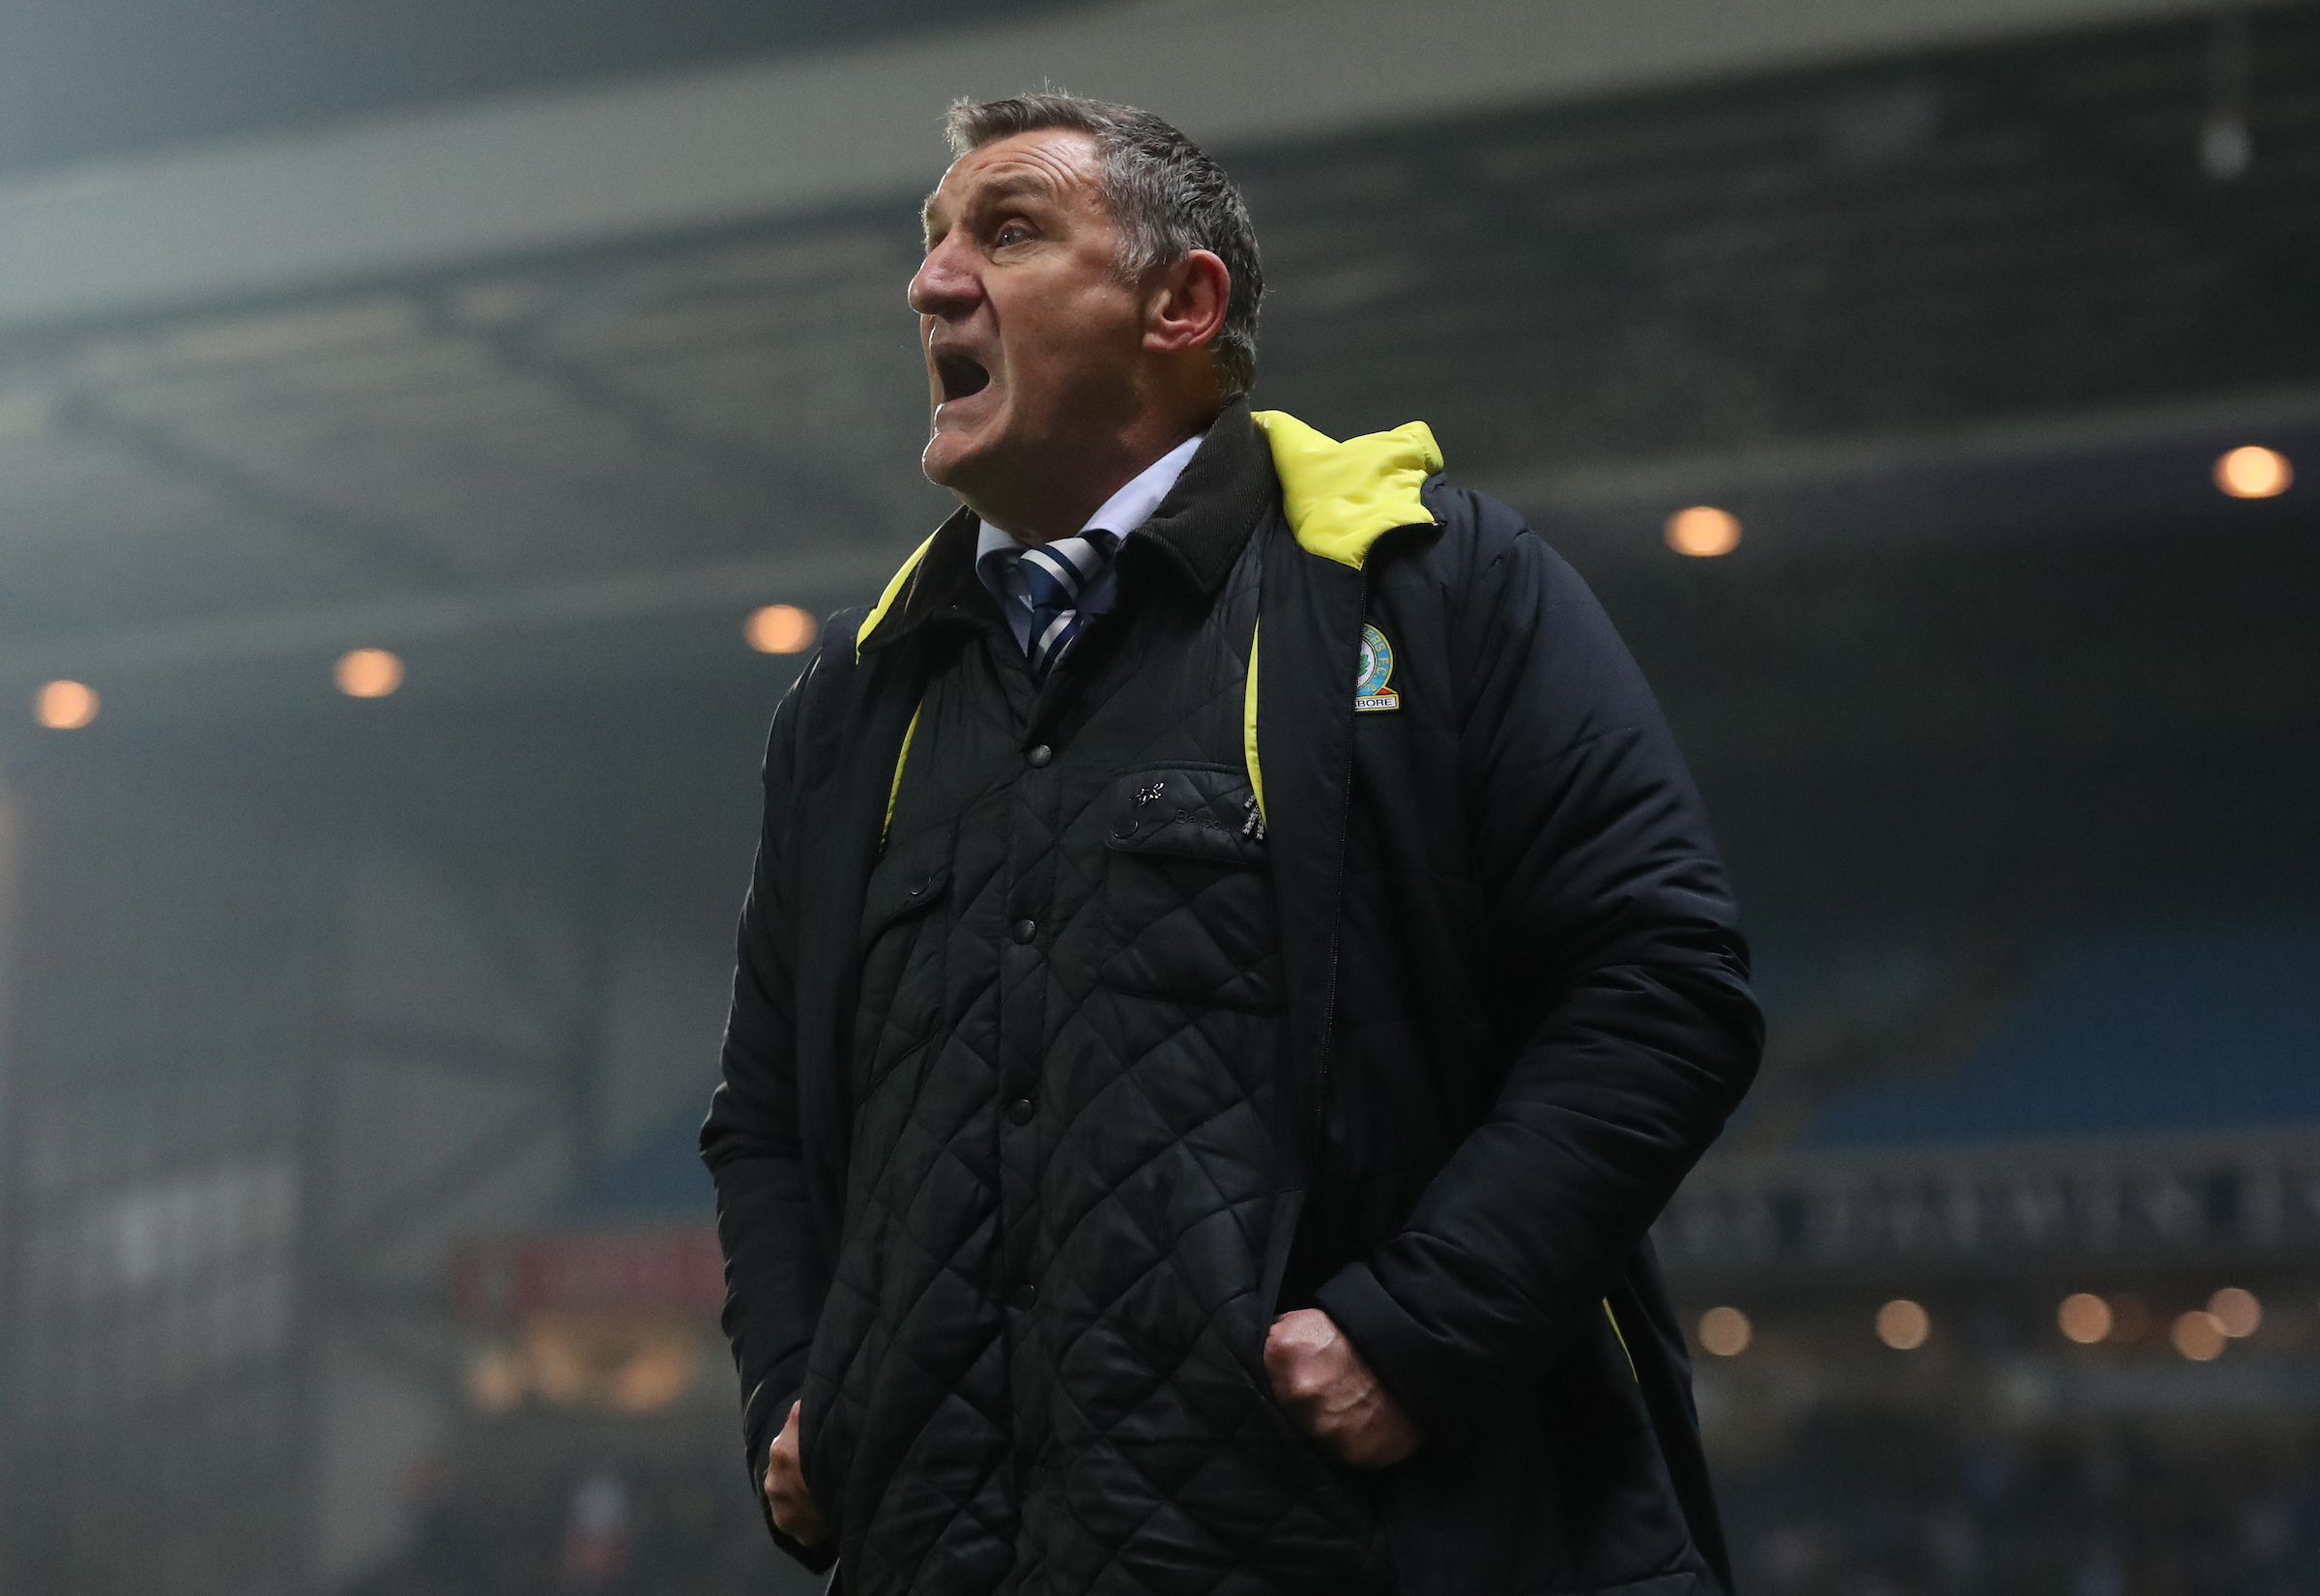 Tony Mowbray wants to see his side close the gap on second-placed Shrewsbury Town